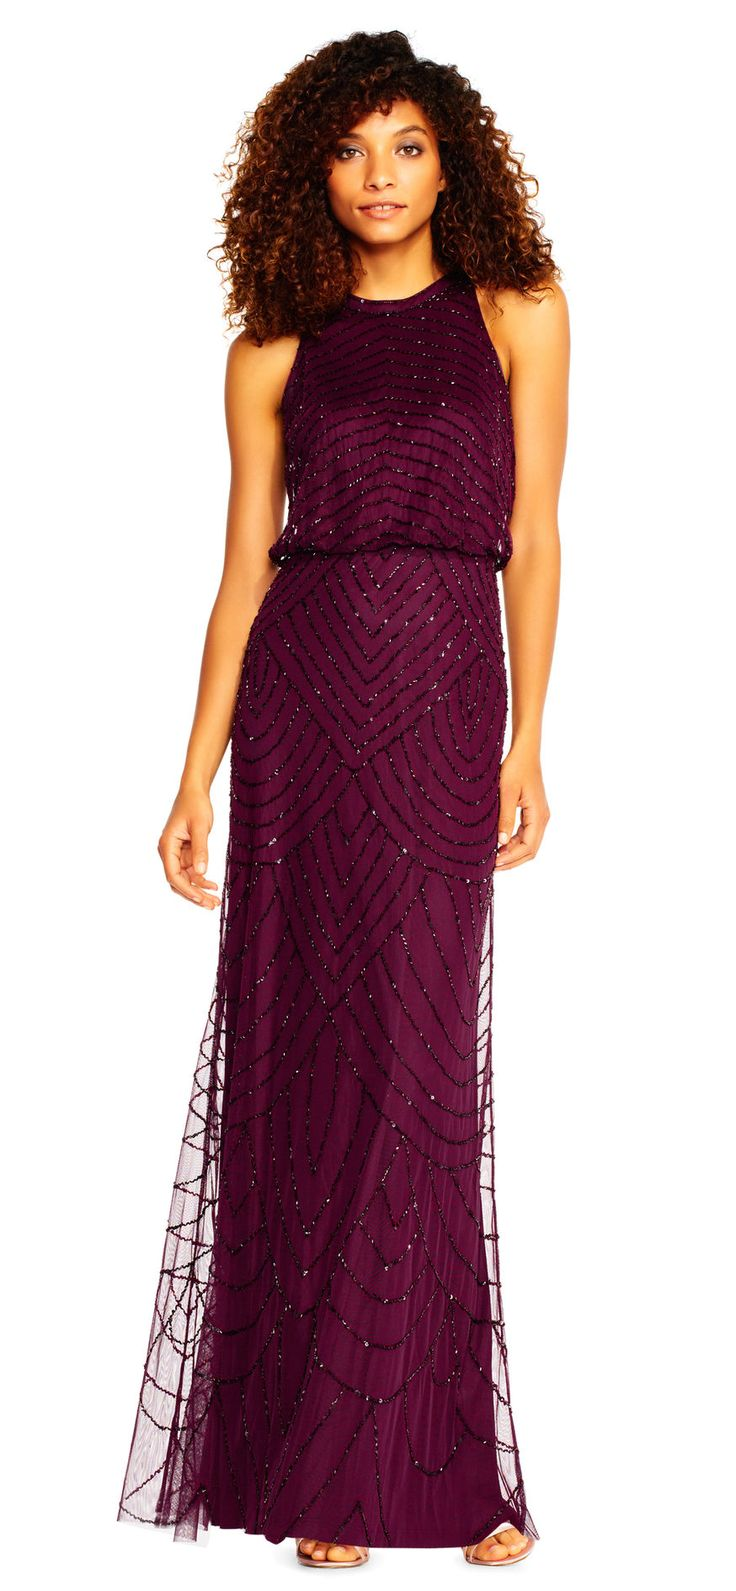 Art deco beading adorns this beloved halter dress from neck to hem. This beaded dress features a blouson bodice with a keyhole back, a flowing straight skirt, and a single button closure at the neckline. Sleek and sleeveless, this halter gown plays well with your favorite sparkling accessories from galas to bridesmaid duty.